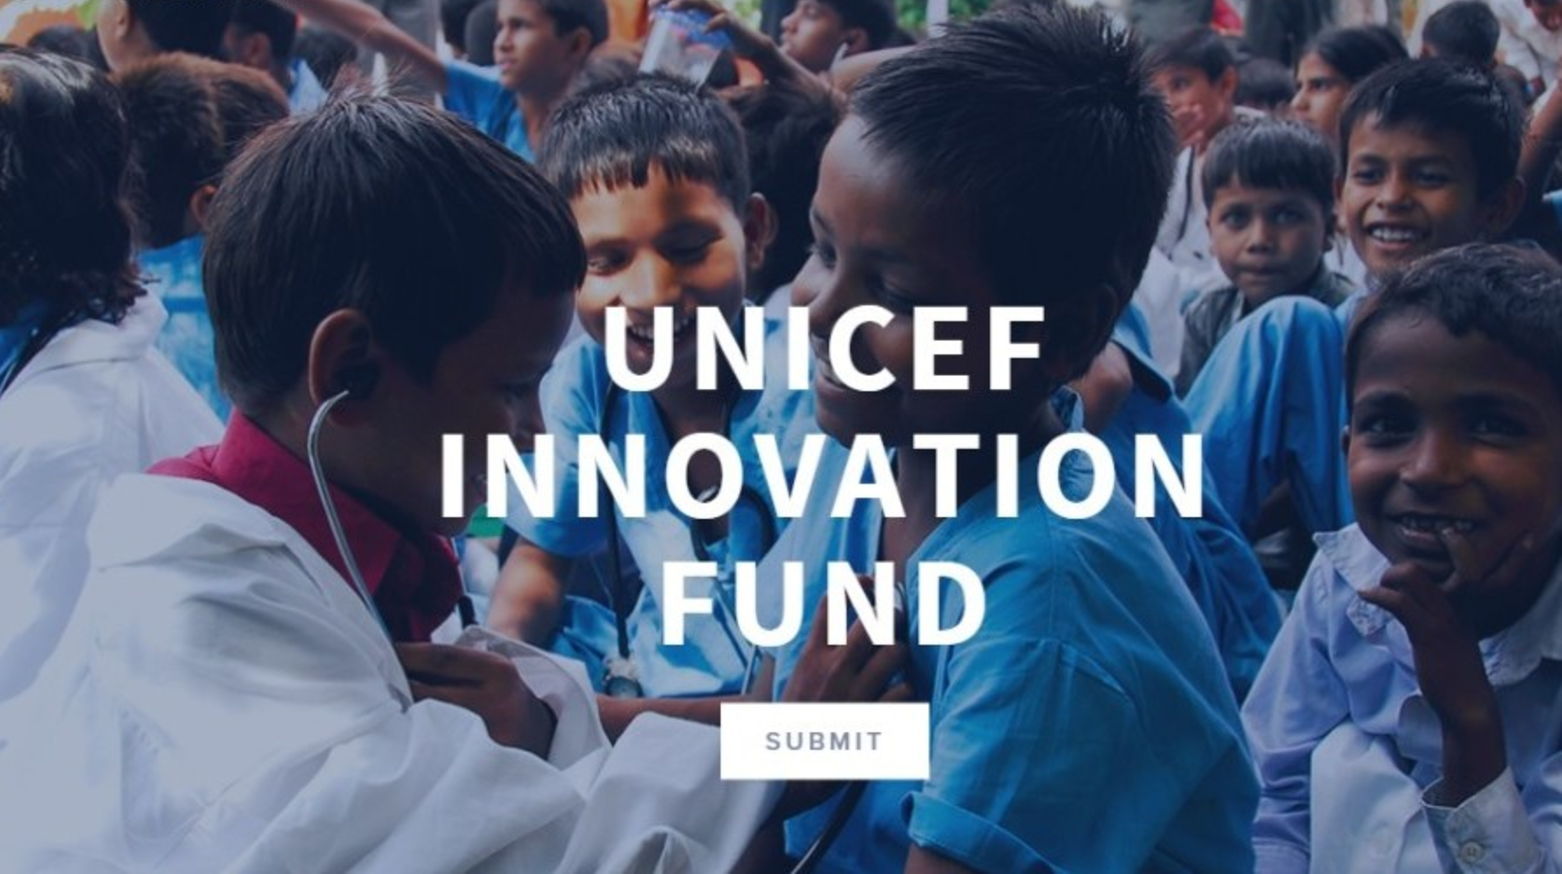 Apply to the UNICEF Innovation Fund 2017 ($50-90,000 in seed funding)